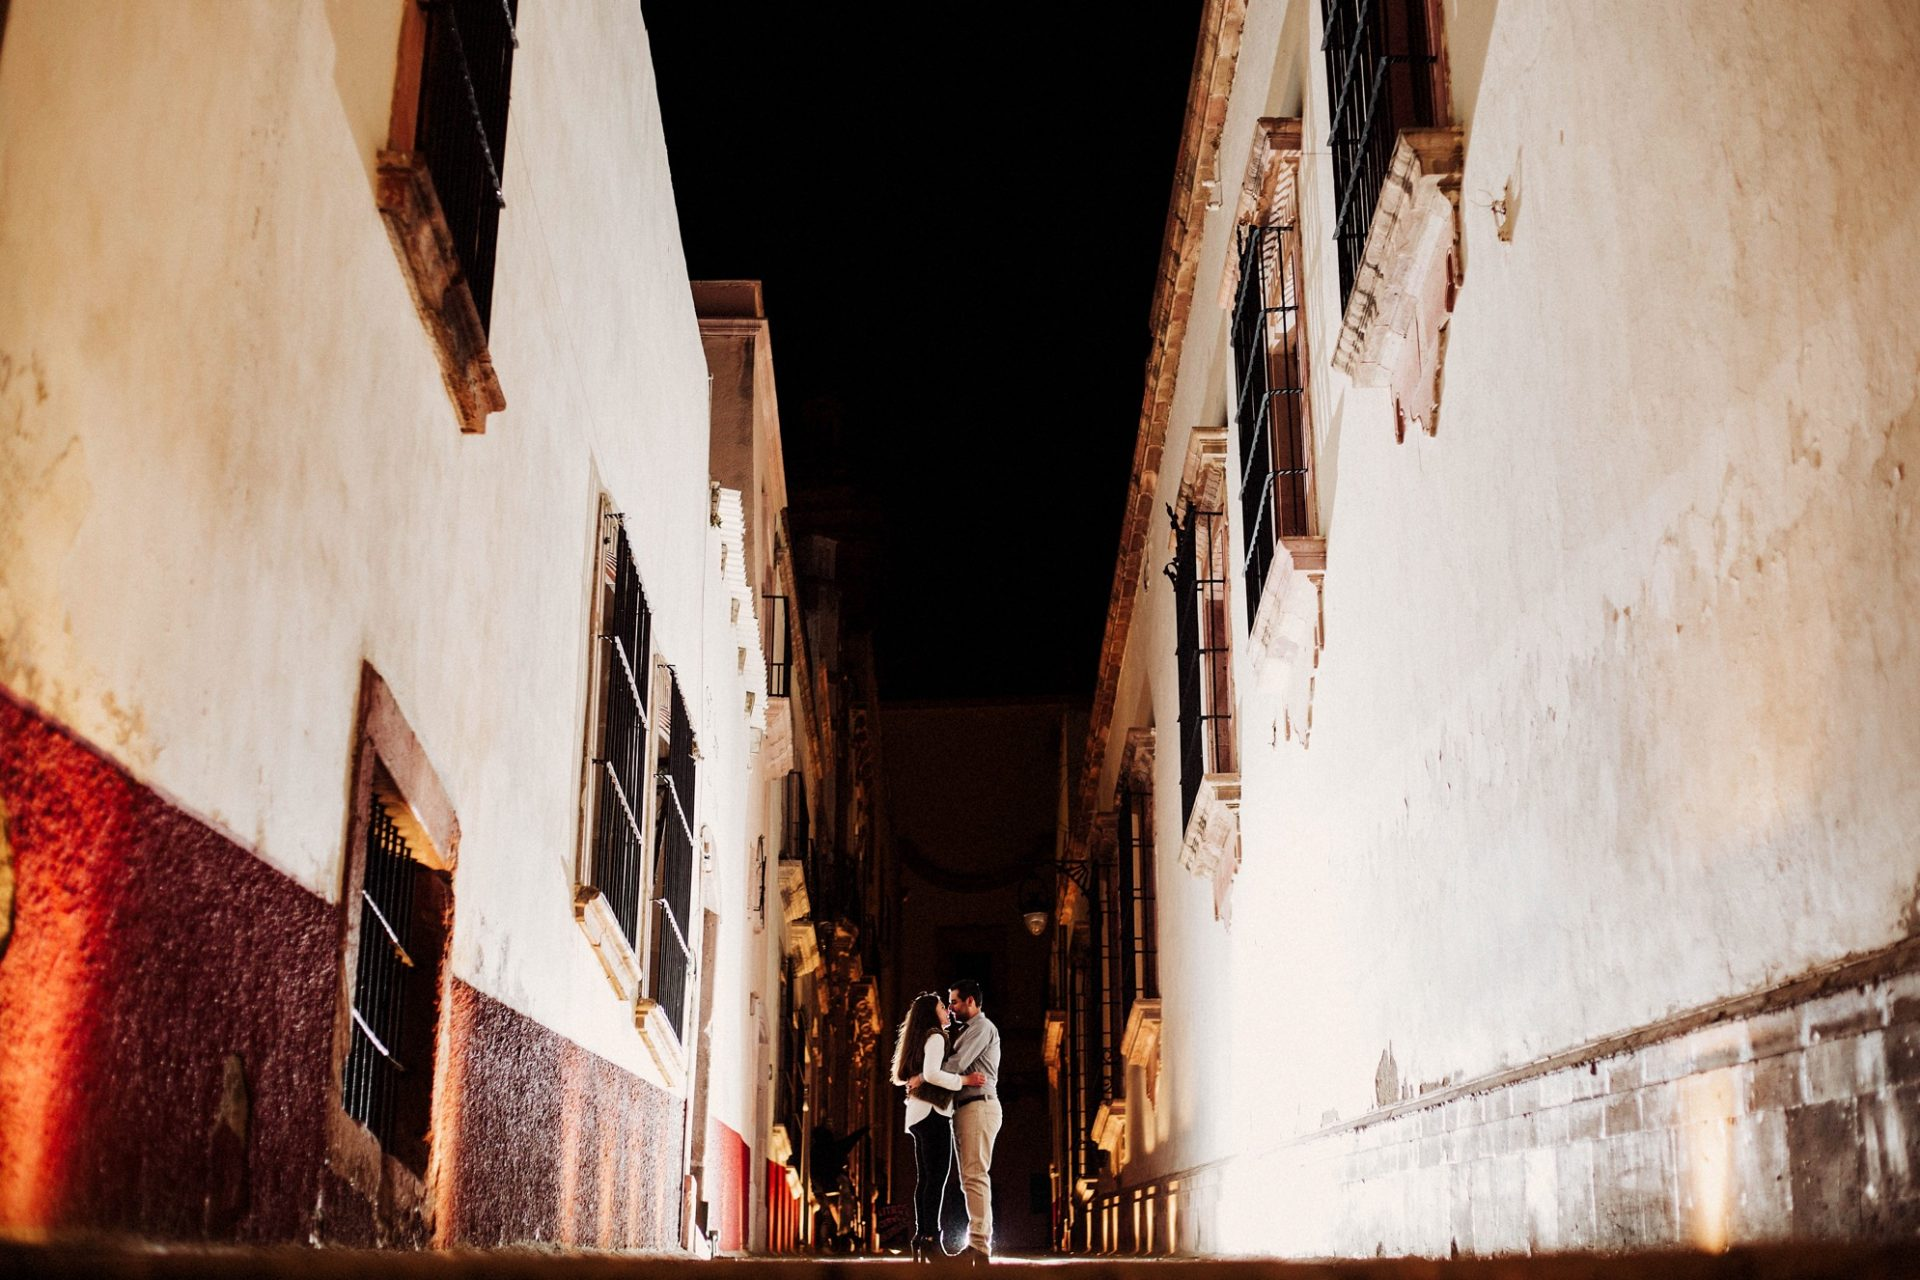 save_the_date_casual_zacatecas_fotografo_profesional_centro_historico-45